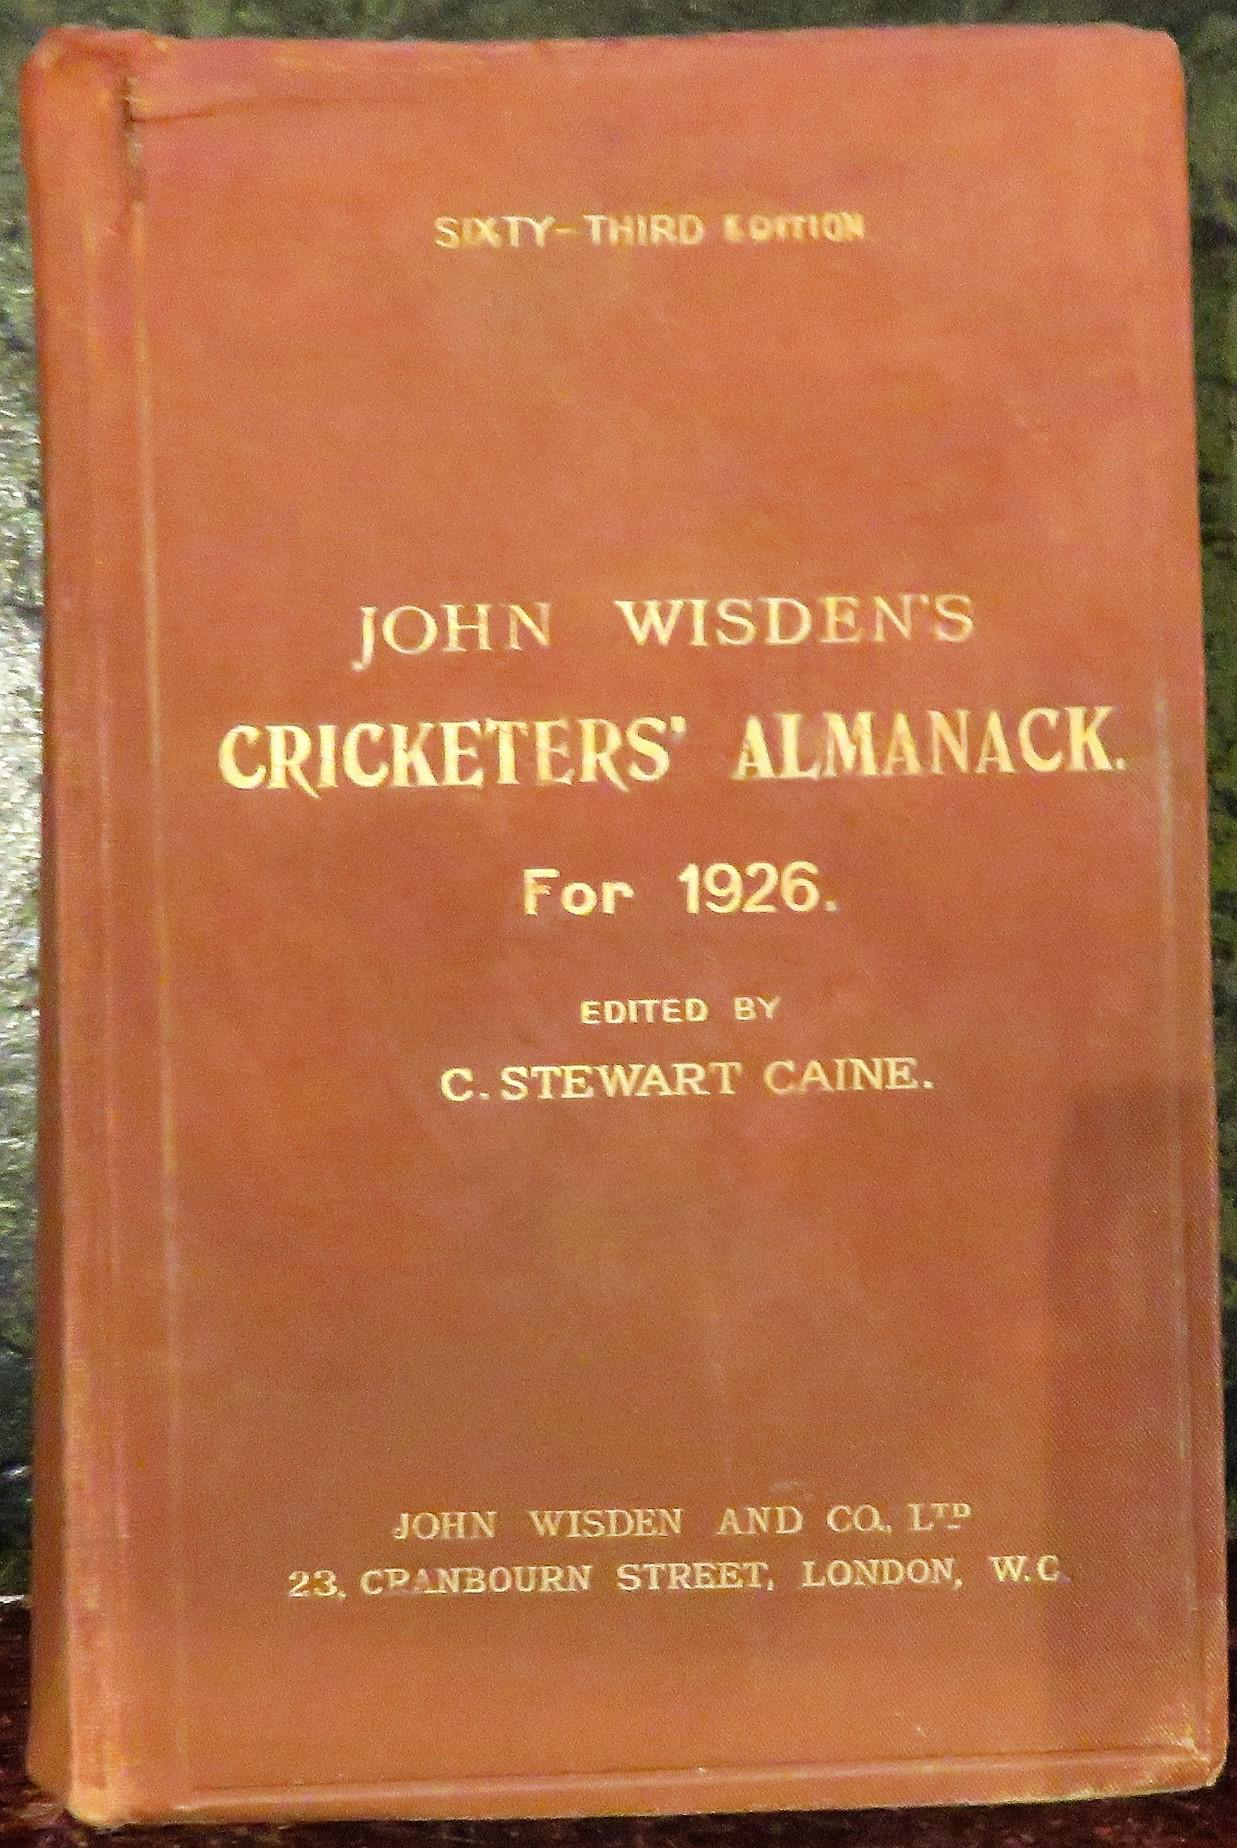 **John Wisden's Cricketers' Almanack For 1926**